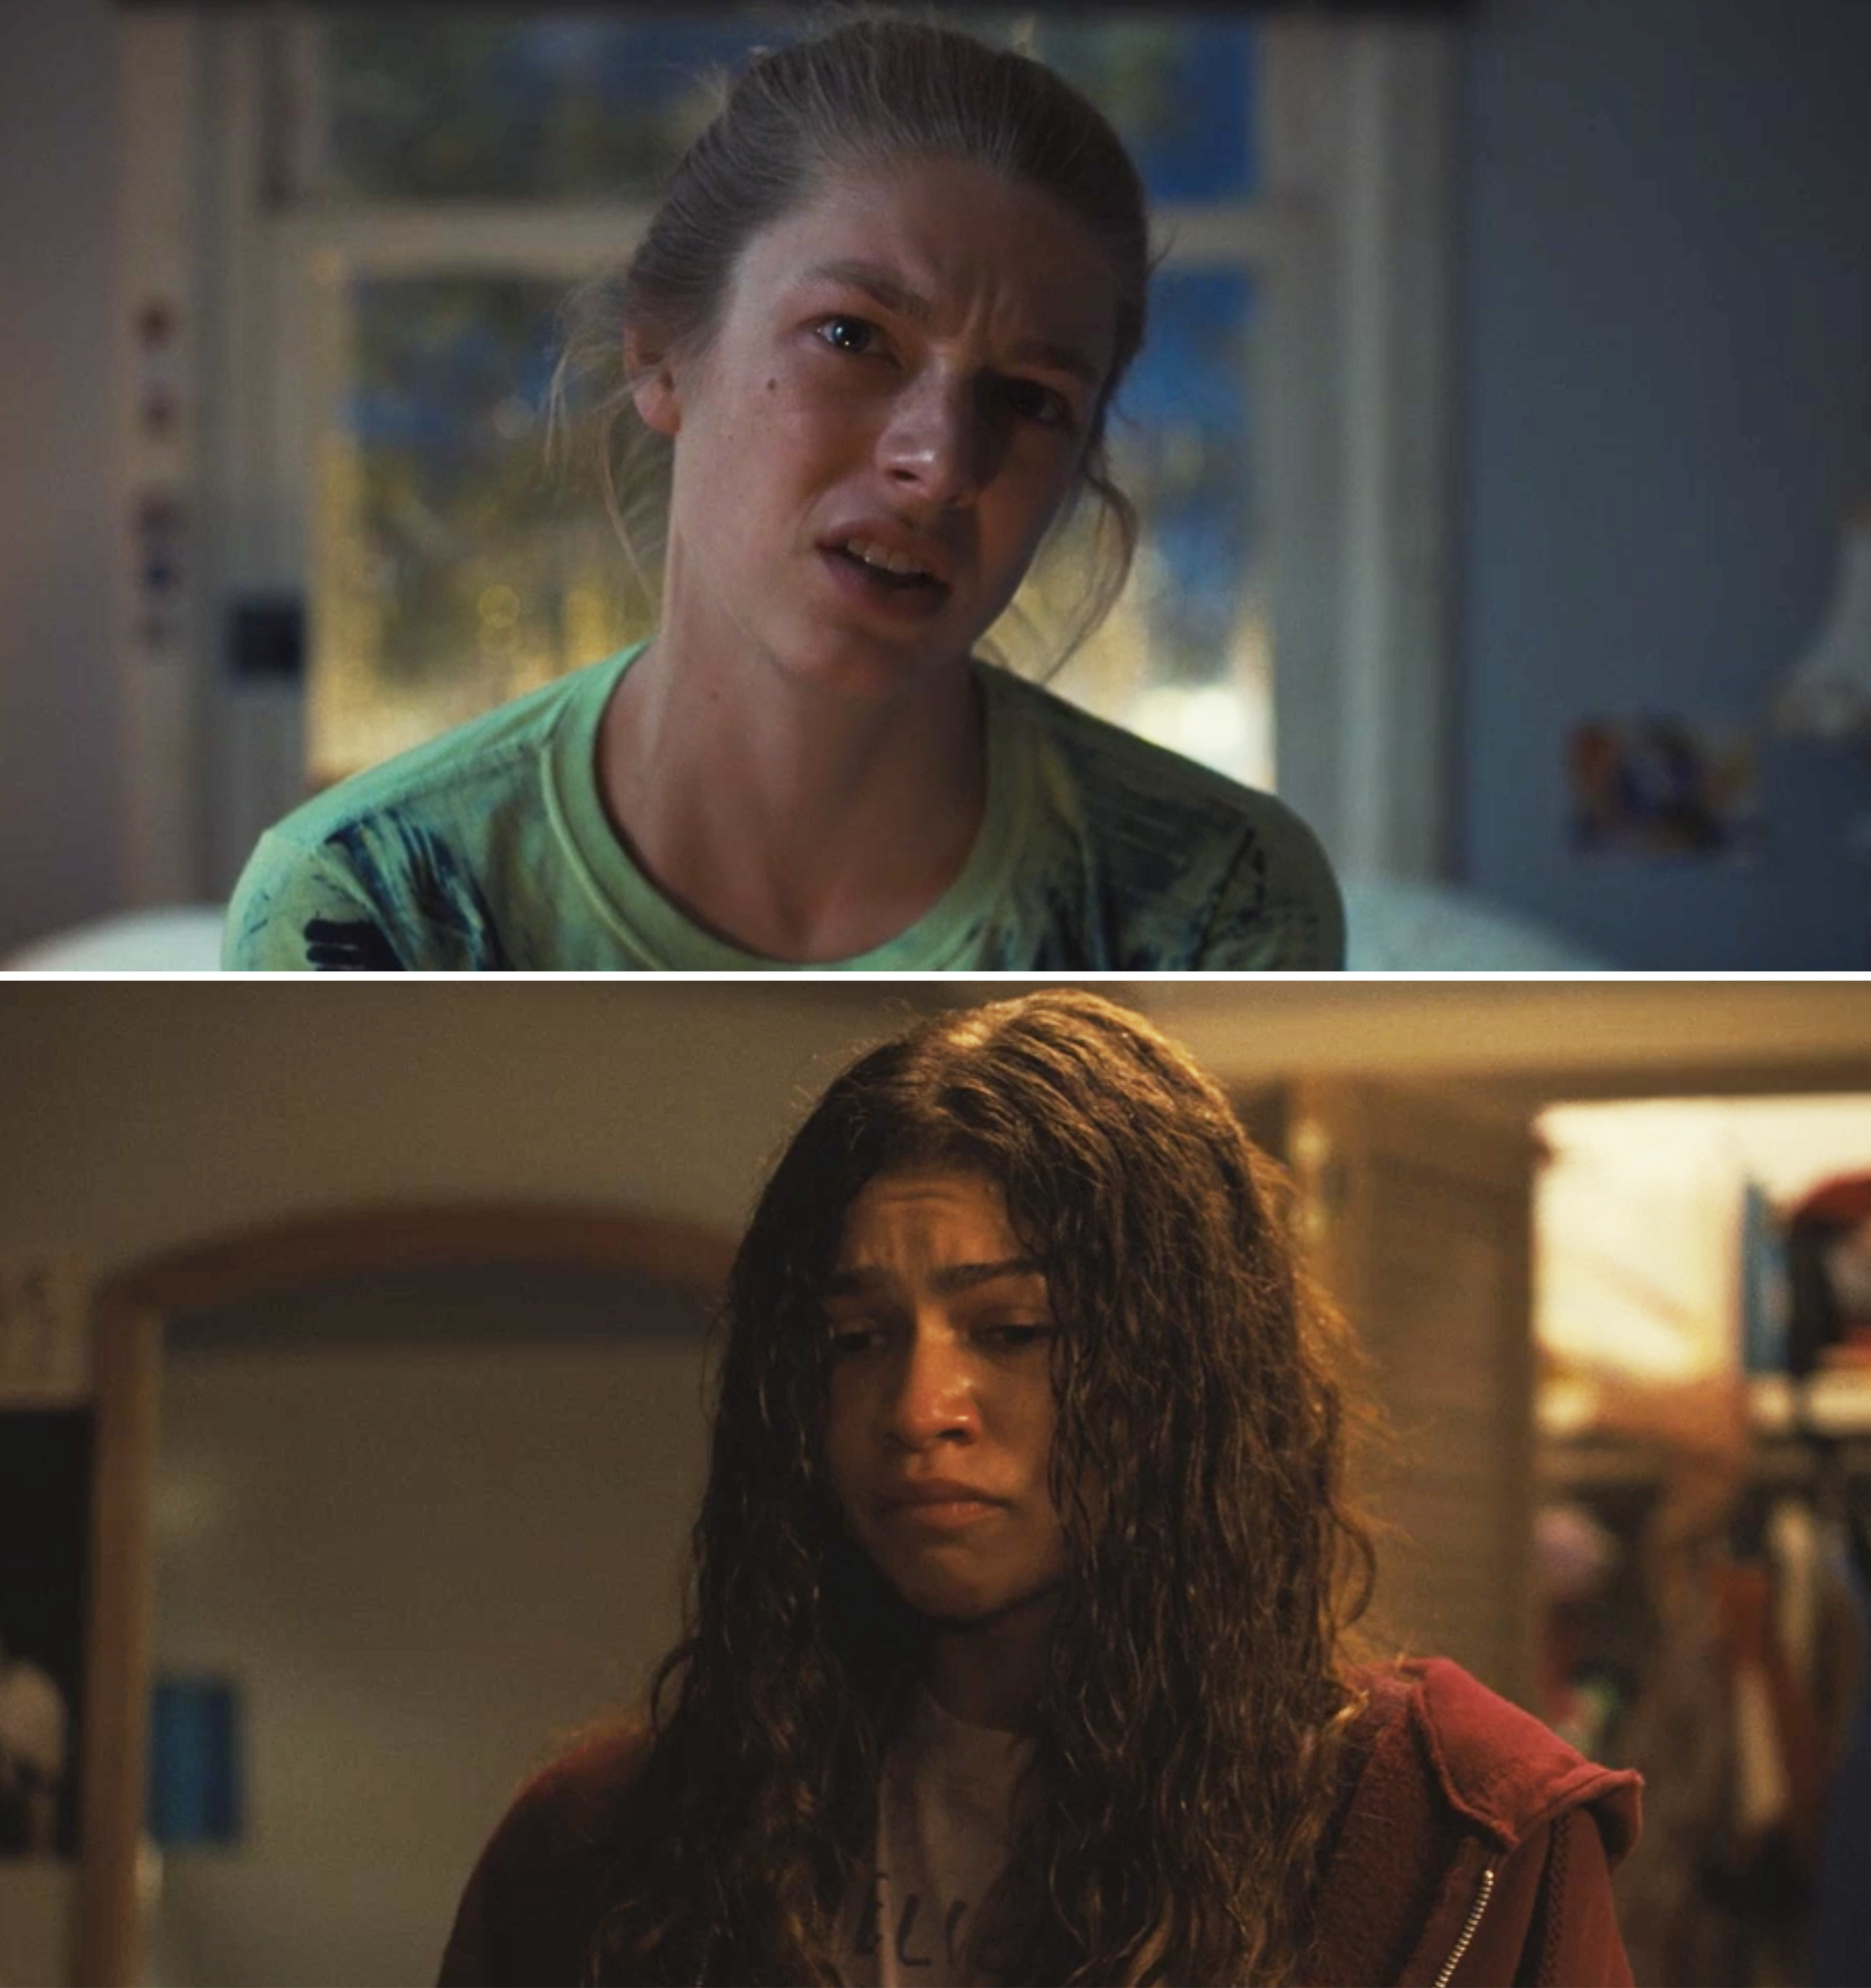 Jules and Rue looking at each other with tears in their eyes